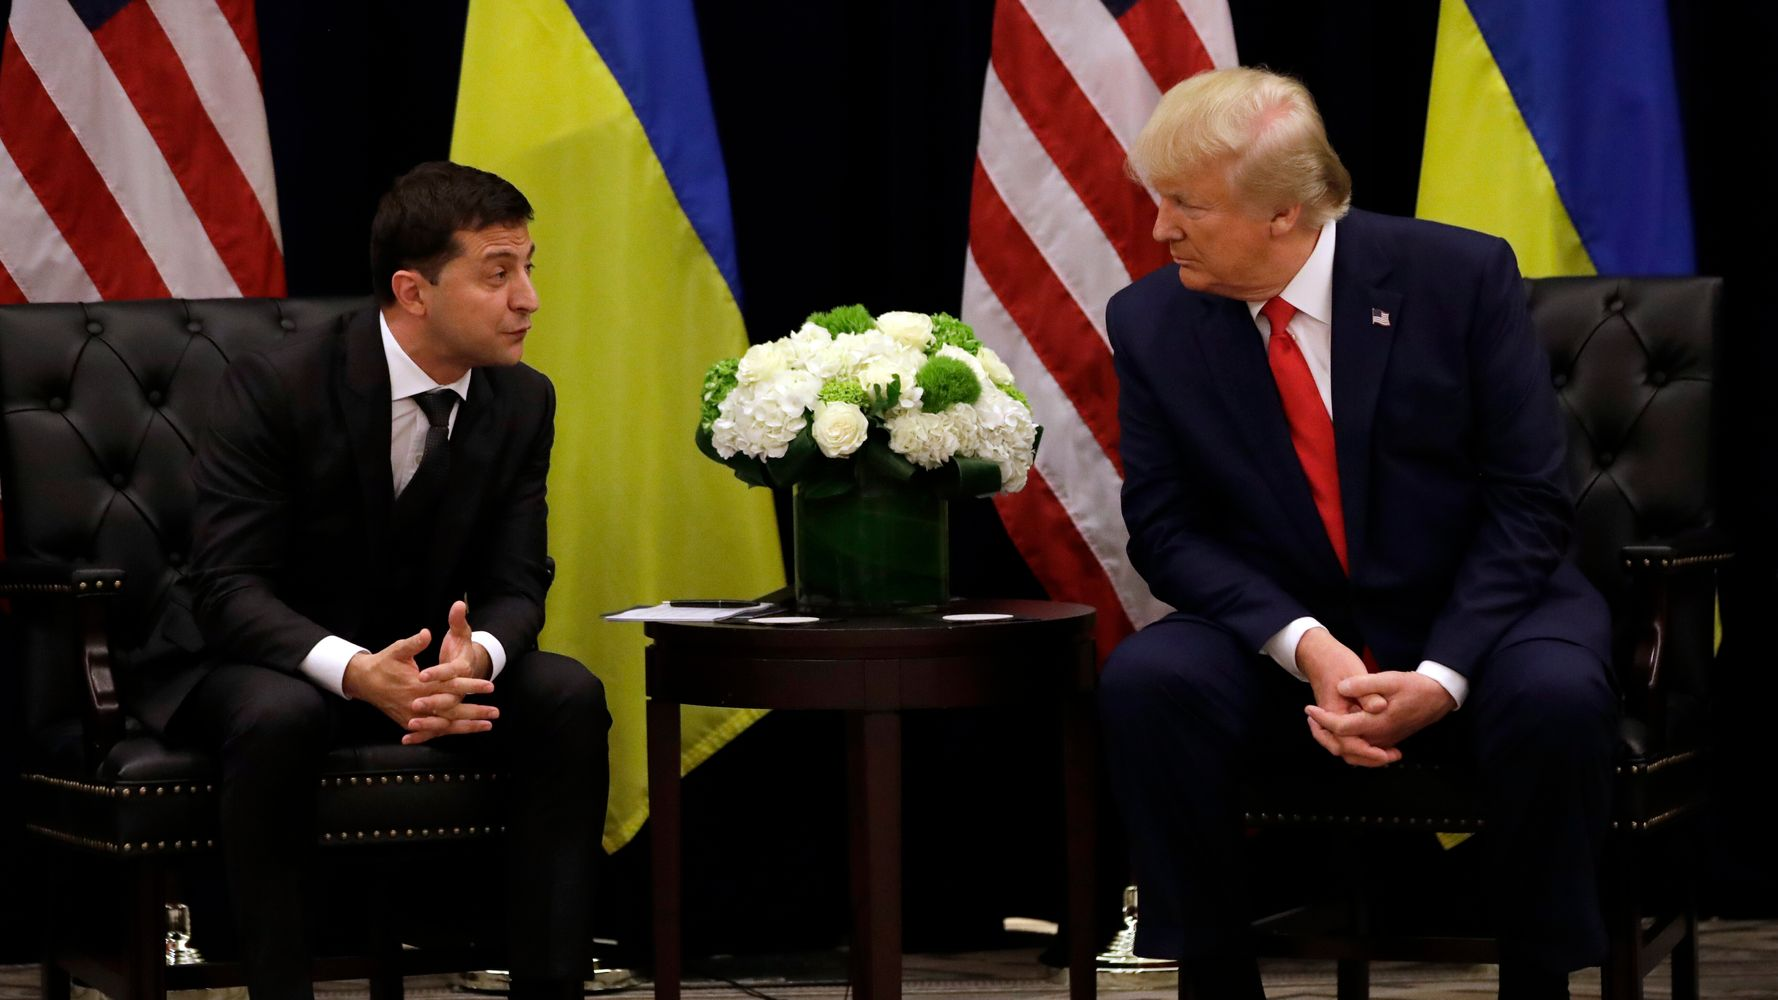 Westlake Legal Group 5e207eb122000052003f788d Trump Administration Illegally Withheld Ukraine Aid, Congressional Watchdog Finds